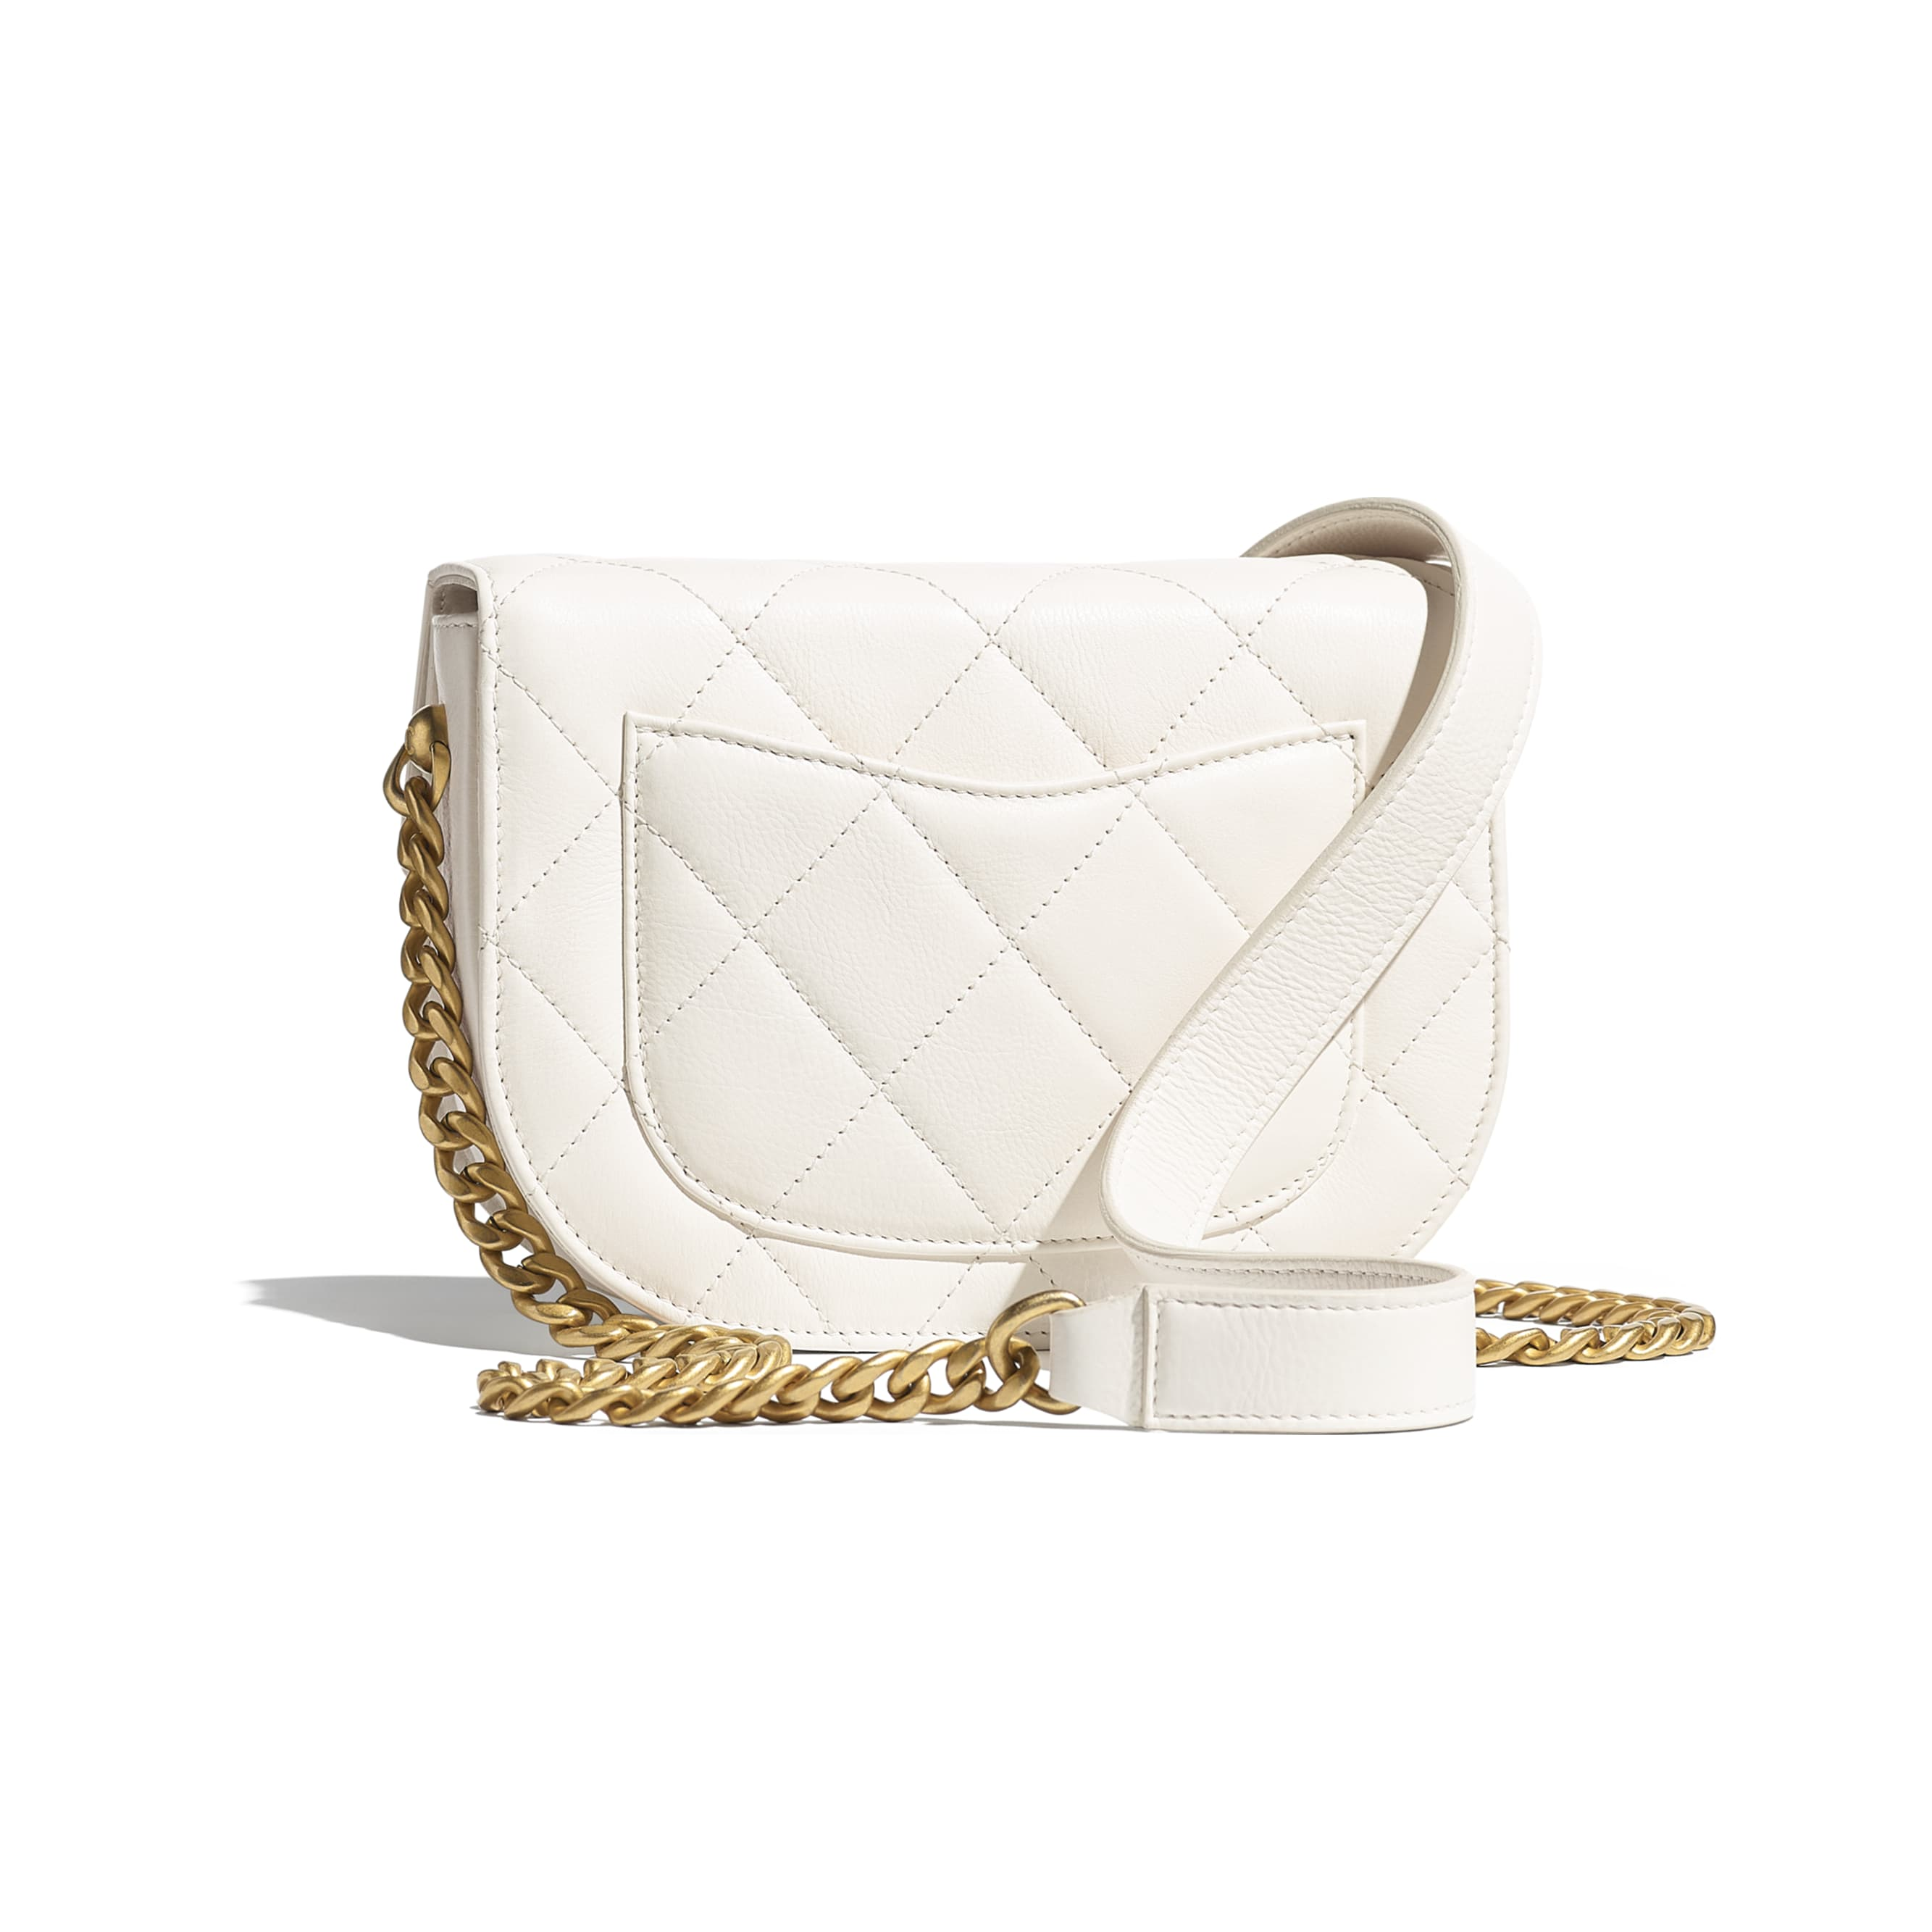 Mini Messenger Bag - White - Calfskin & Gold-Tone Metal - CHANEL - Alternative view - see standard sized version